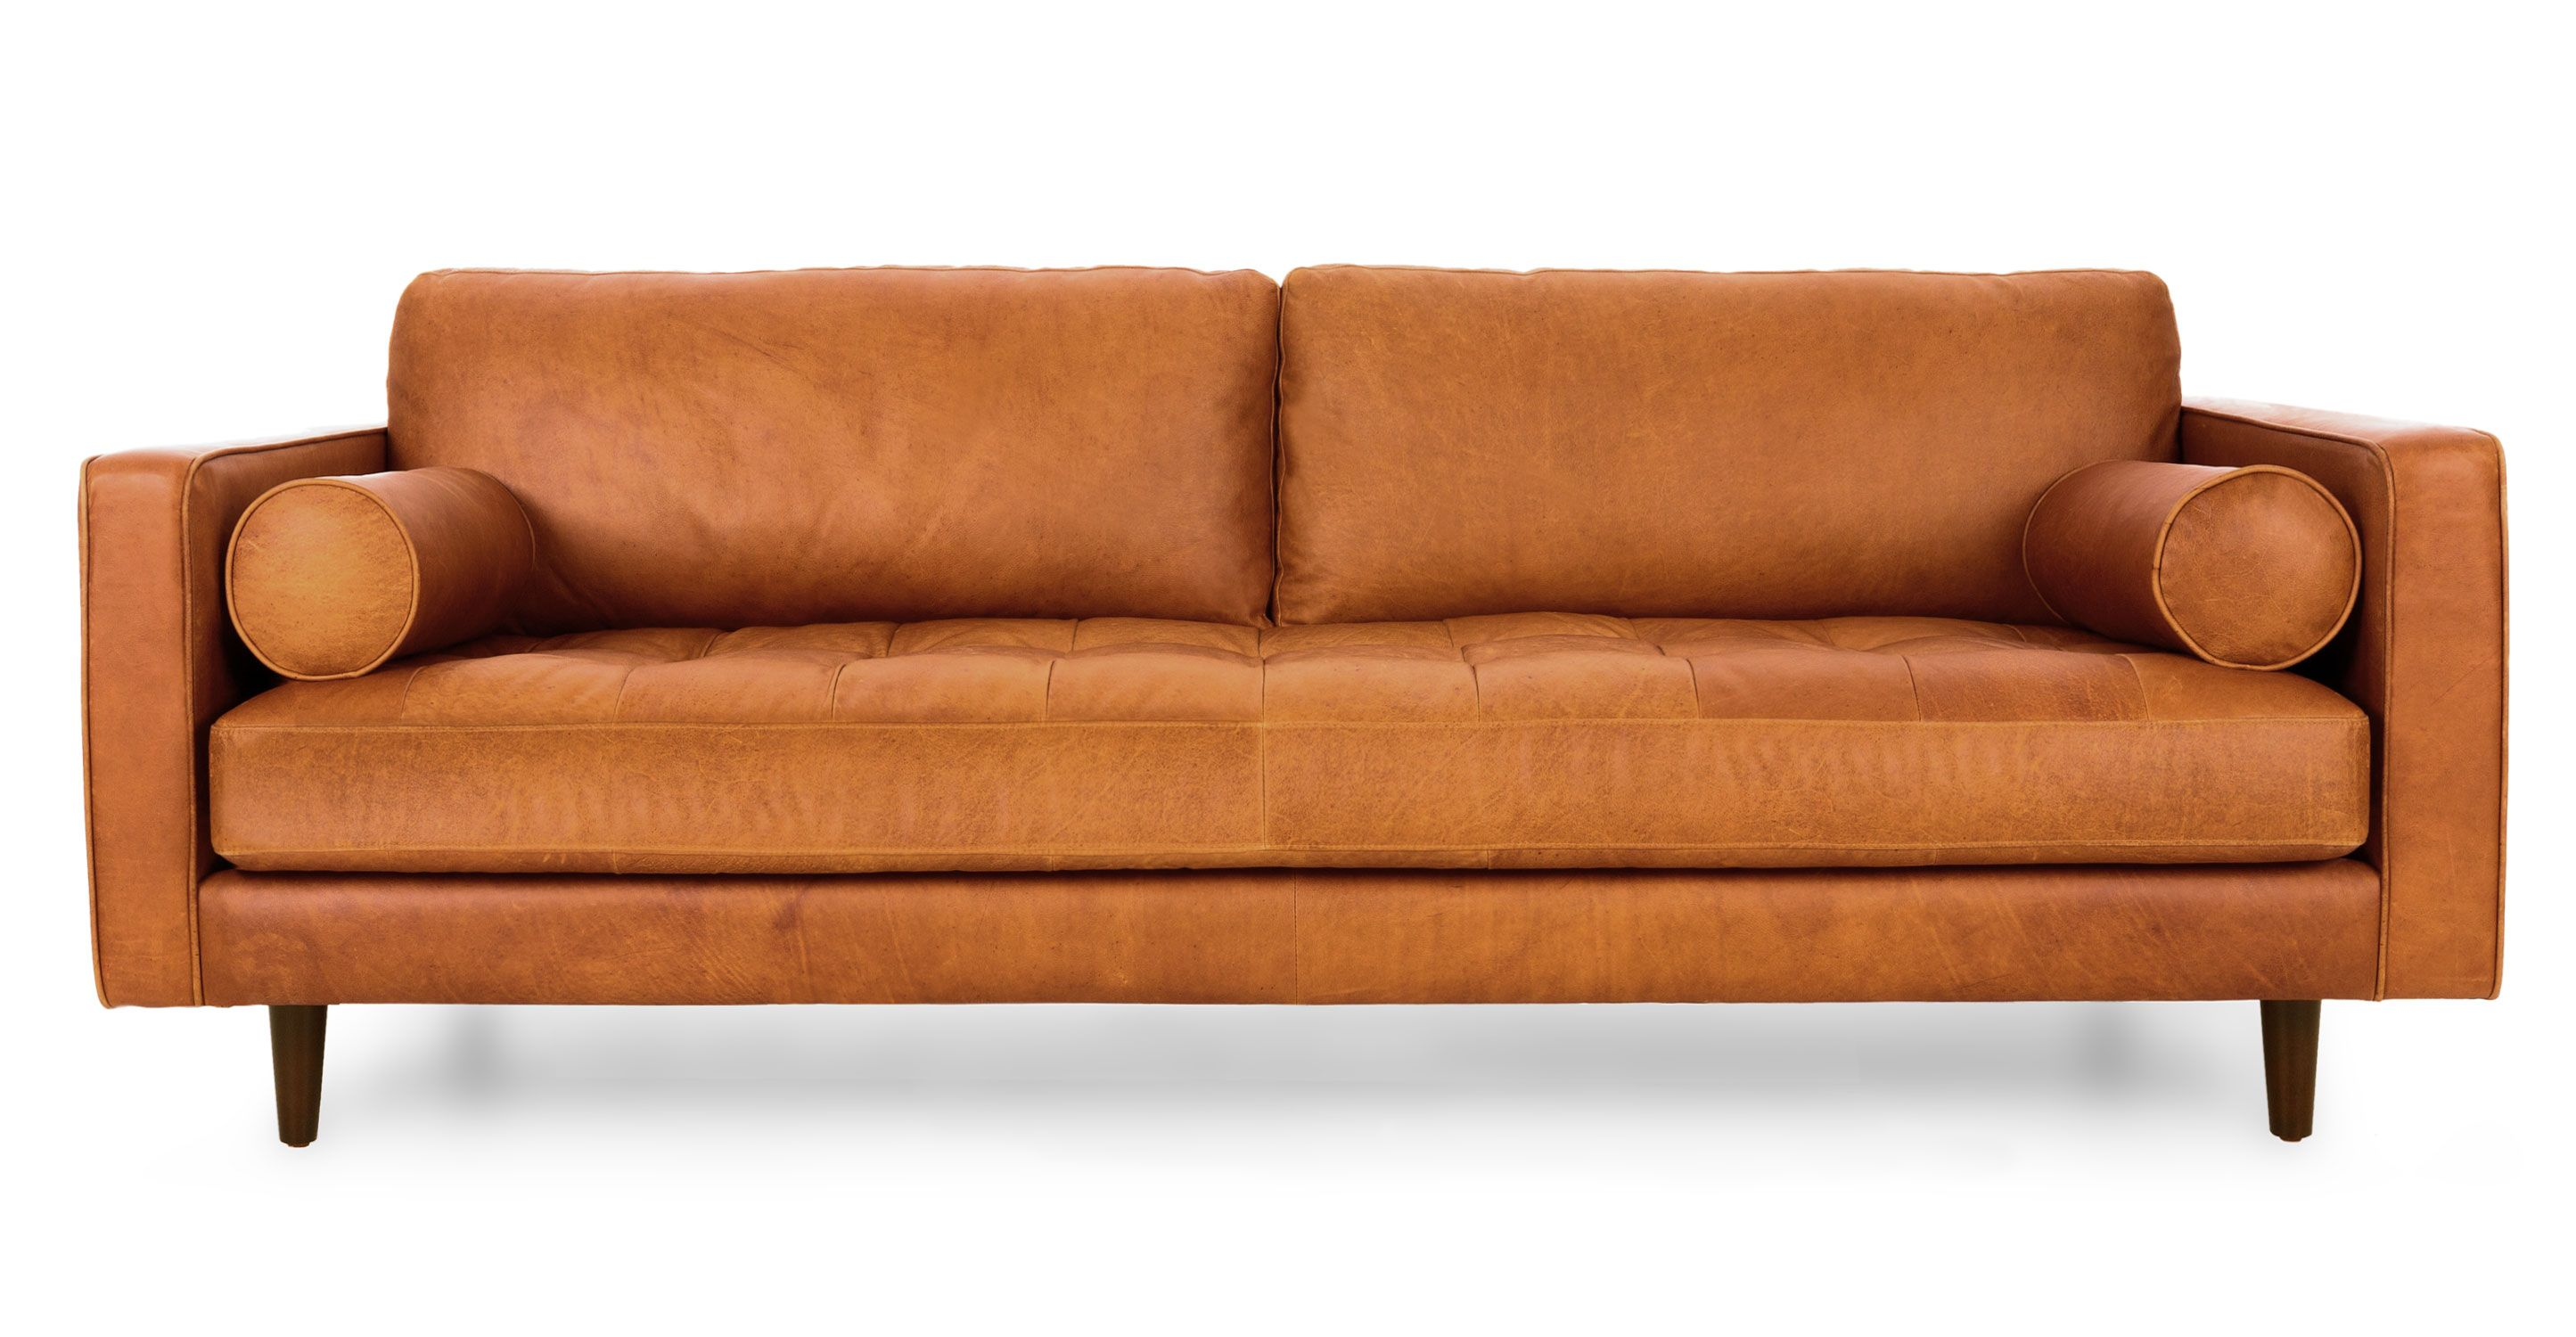 Tan brown leather sofa italian leather article sven for Modern furniture sofa